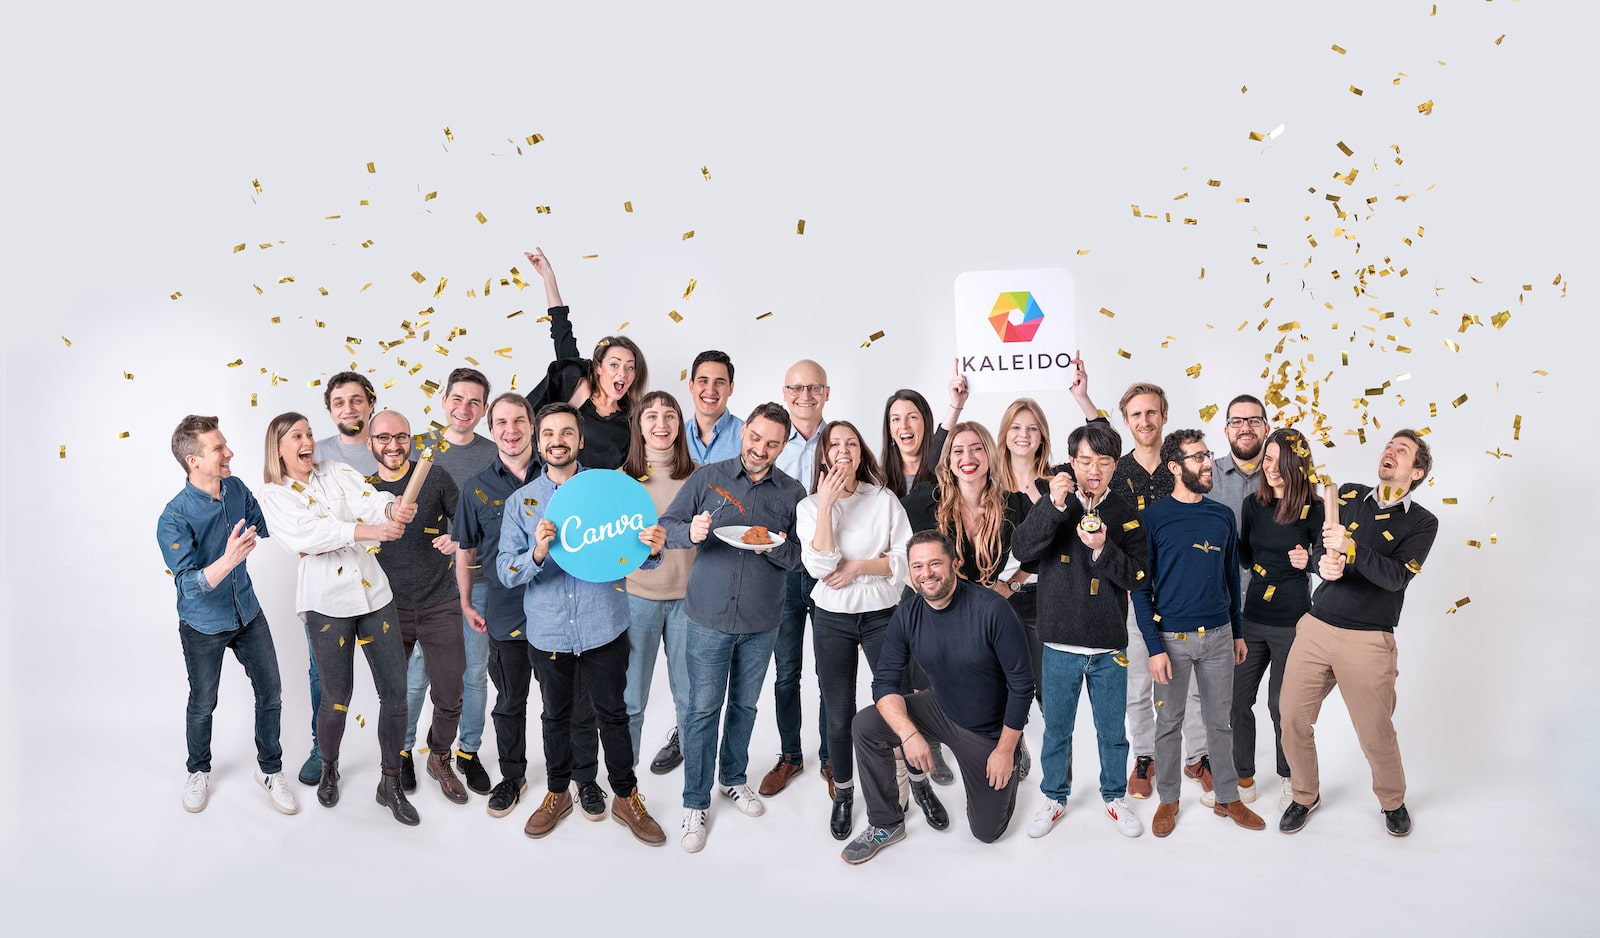 The Vienna-based Kaleido AI team in a COVID-safe digital montage created using Kaleido's AI-based background removal technology.